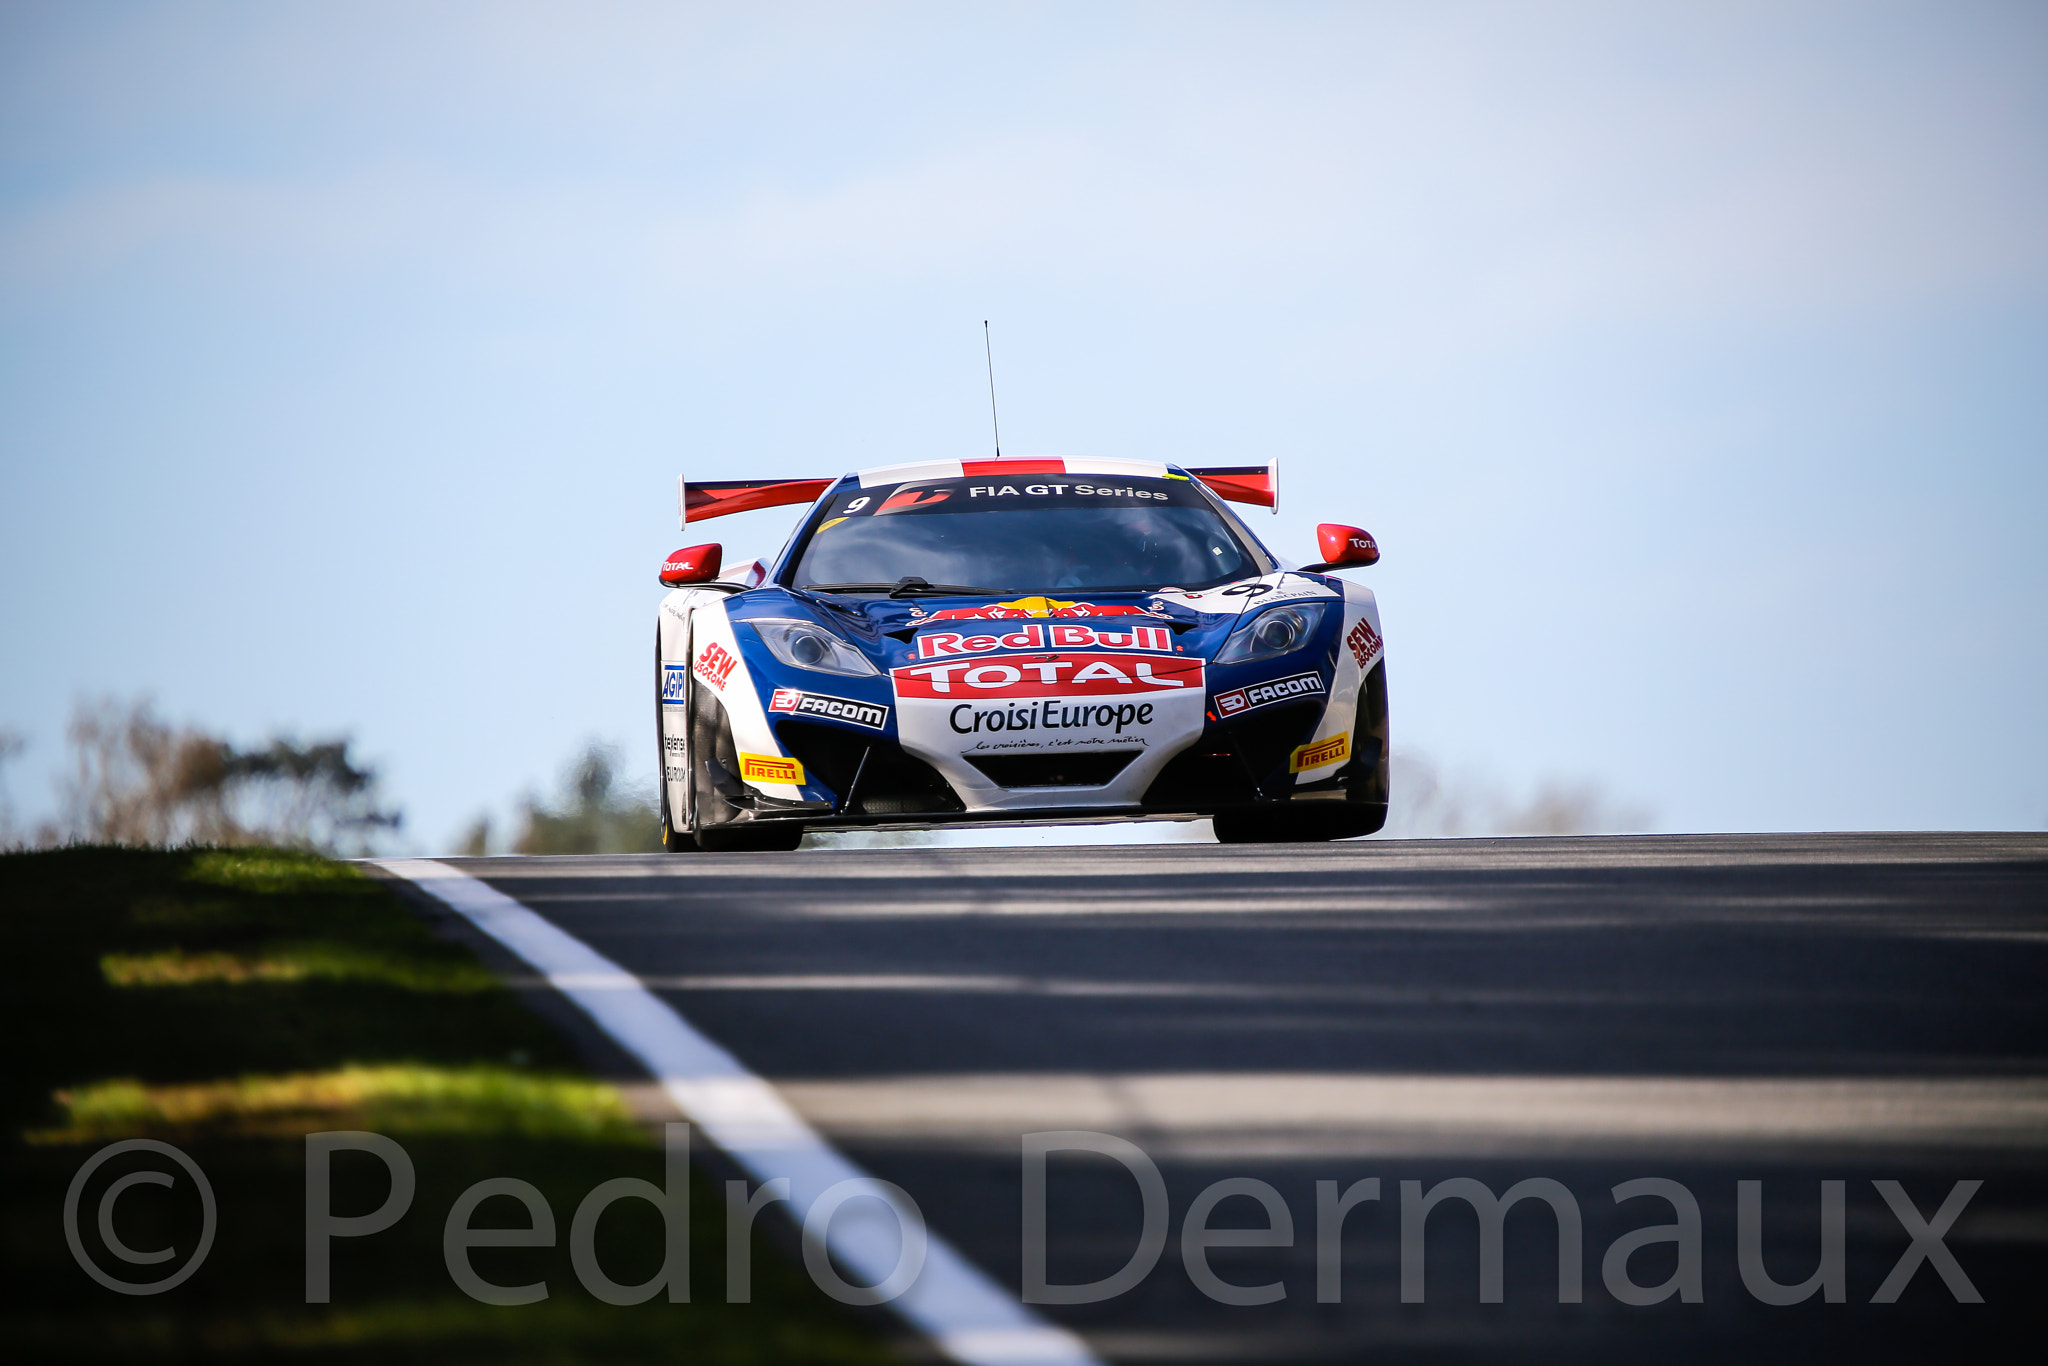 Photograph Loeb coming over the Hill by Pedro Dermaux on 500px